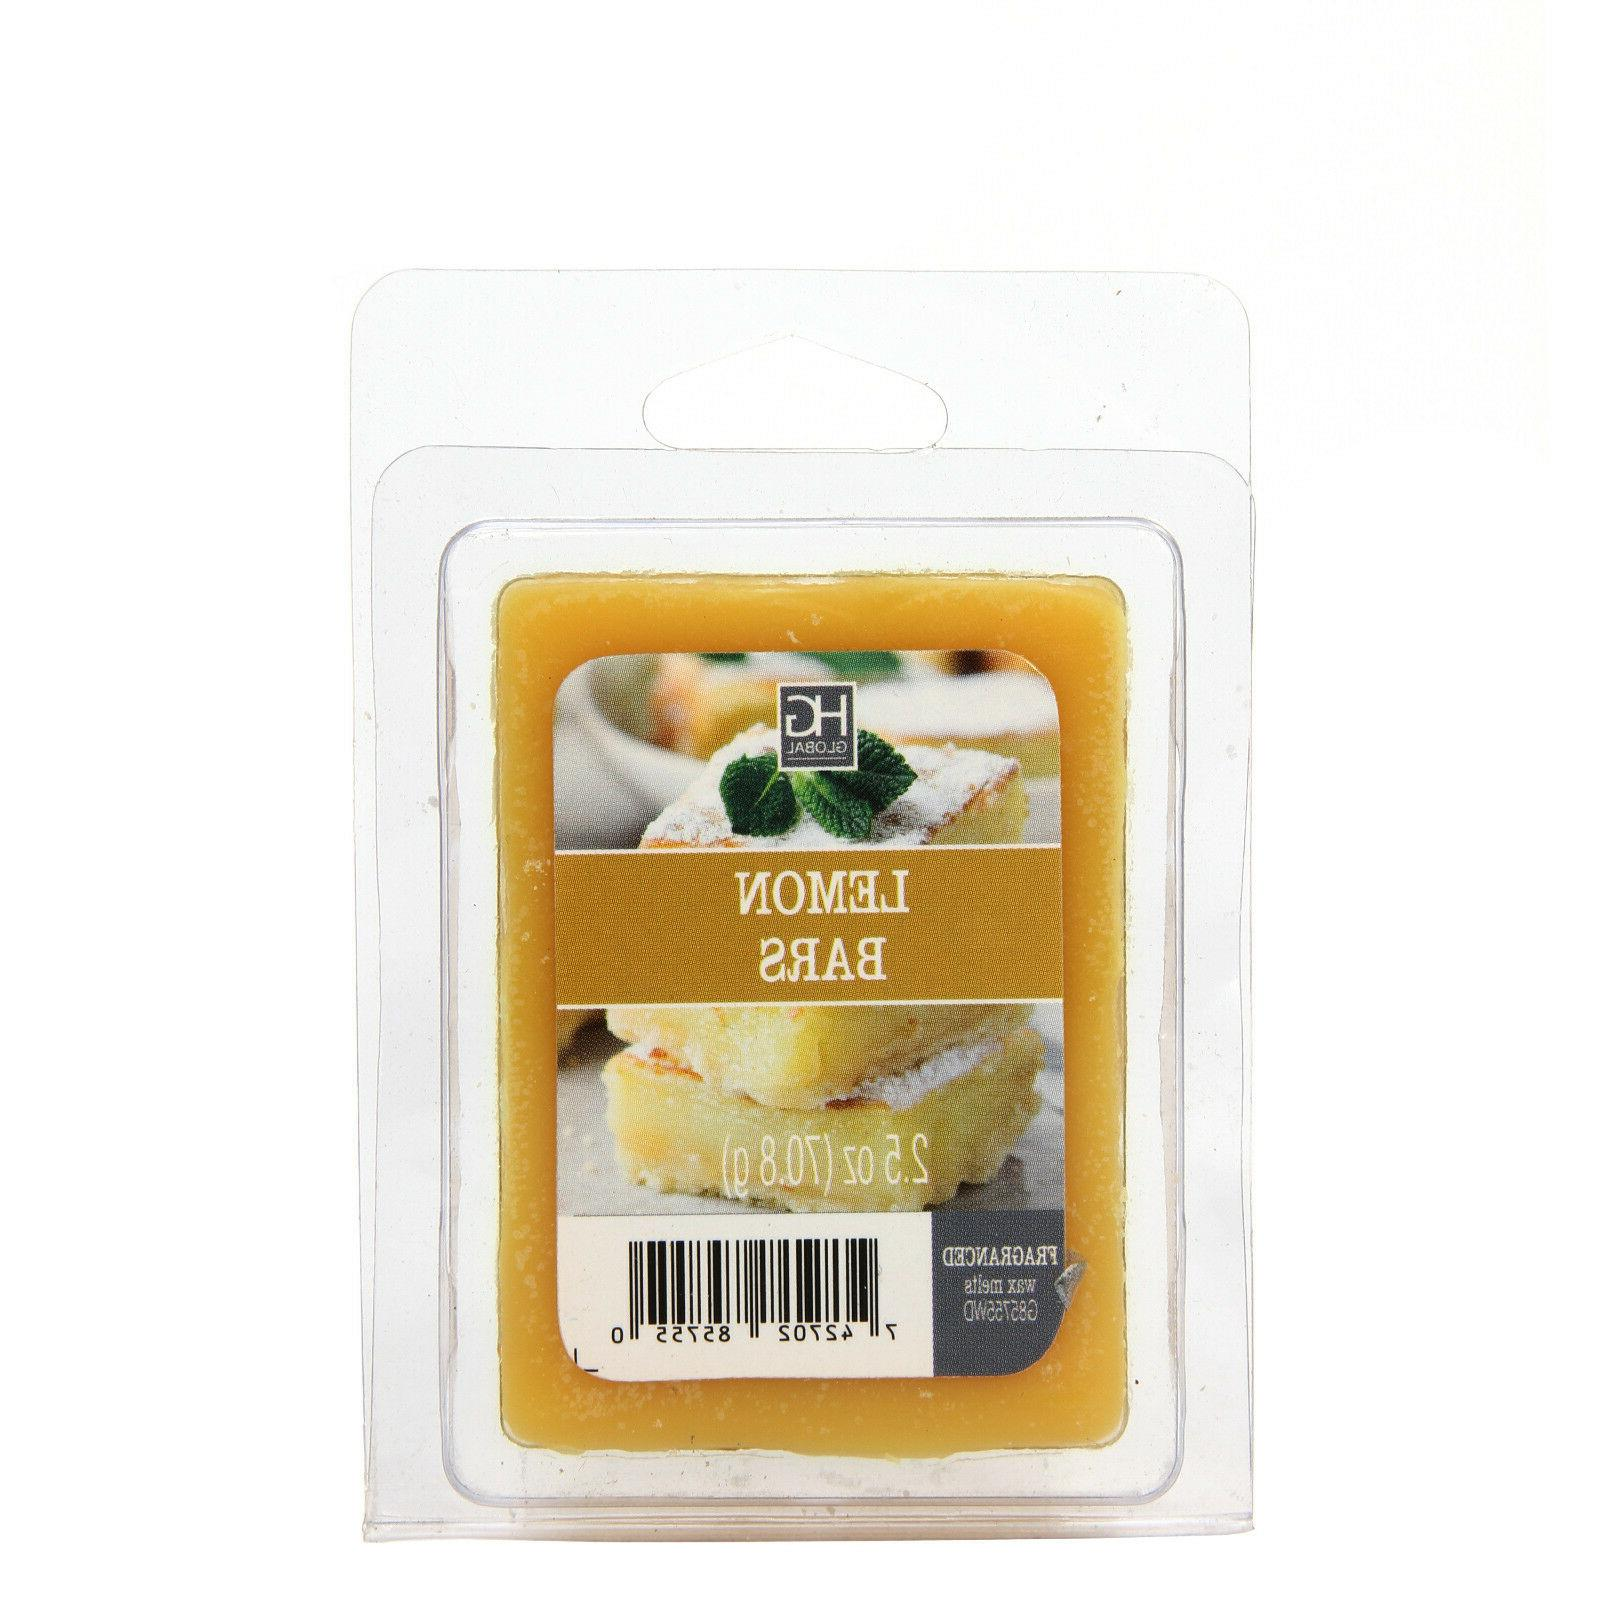 Hosley's Hawaiian Fruit Scented Wax Cubes / Melts - 2.5 oz.